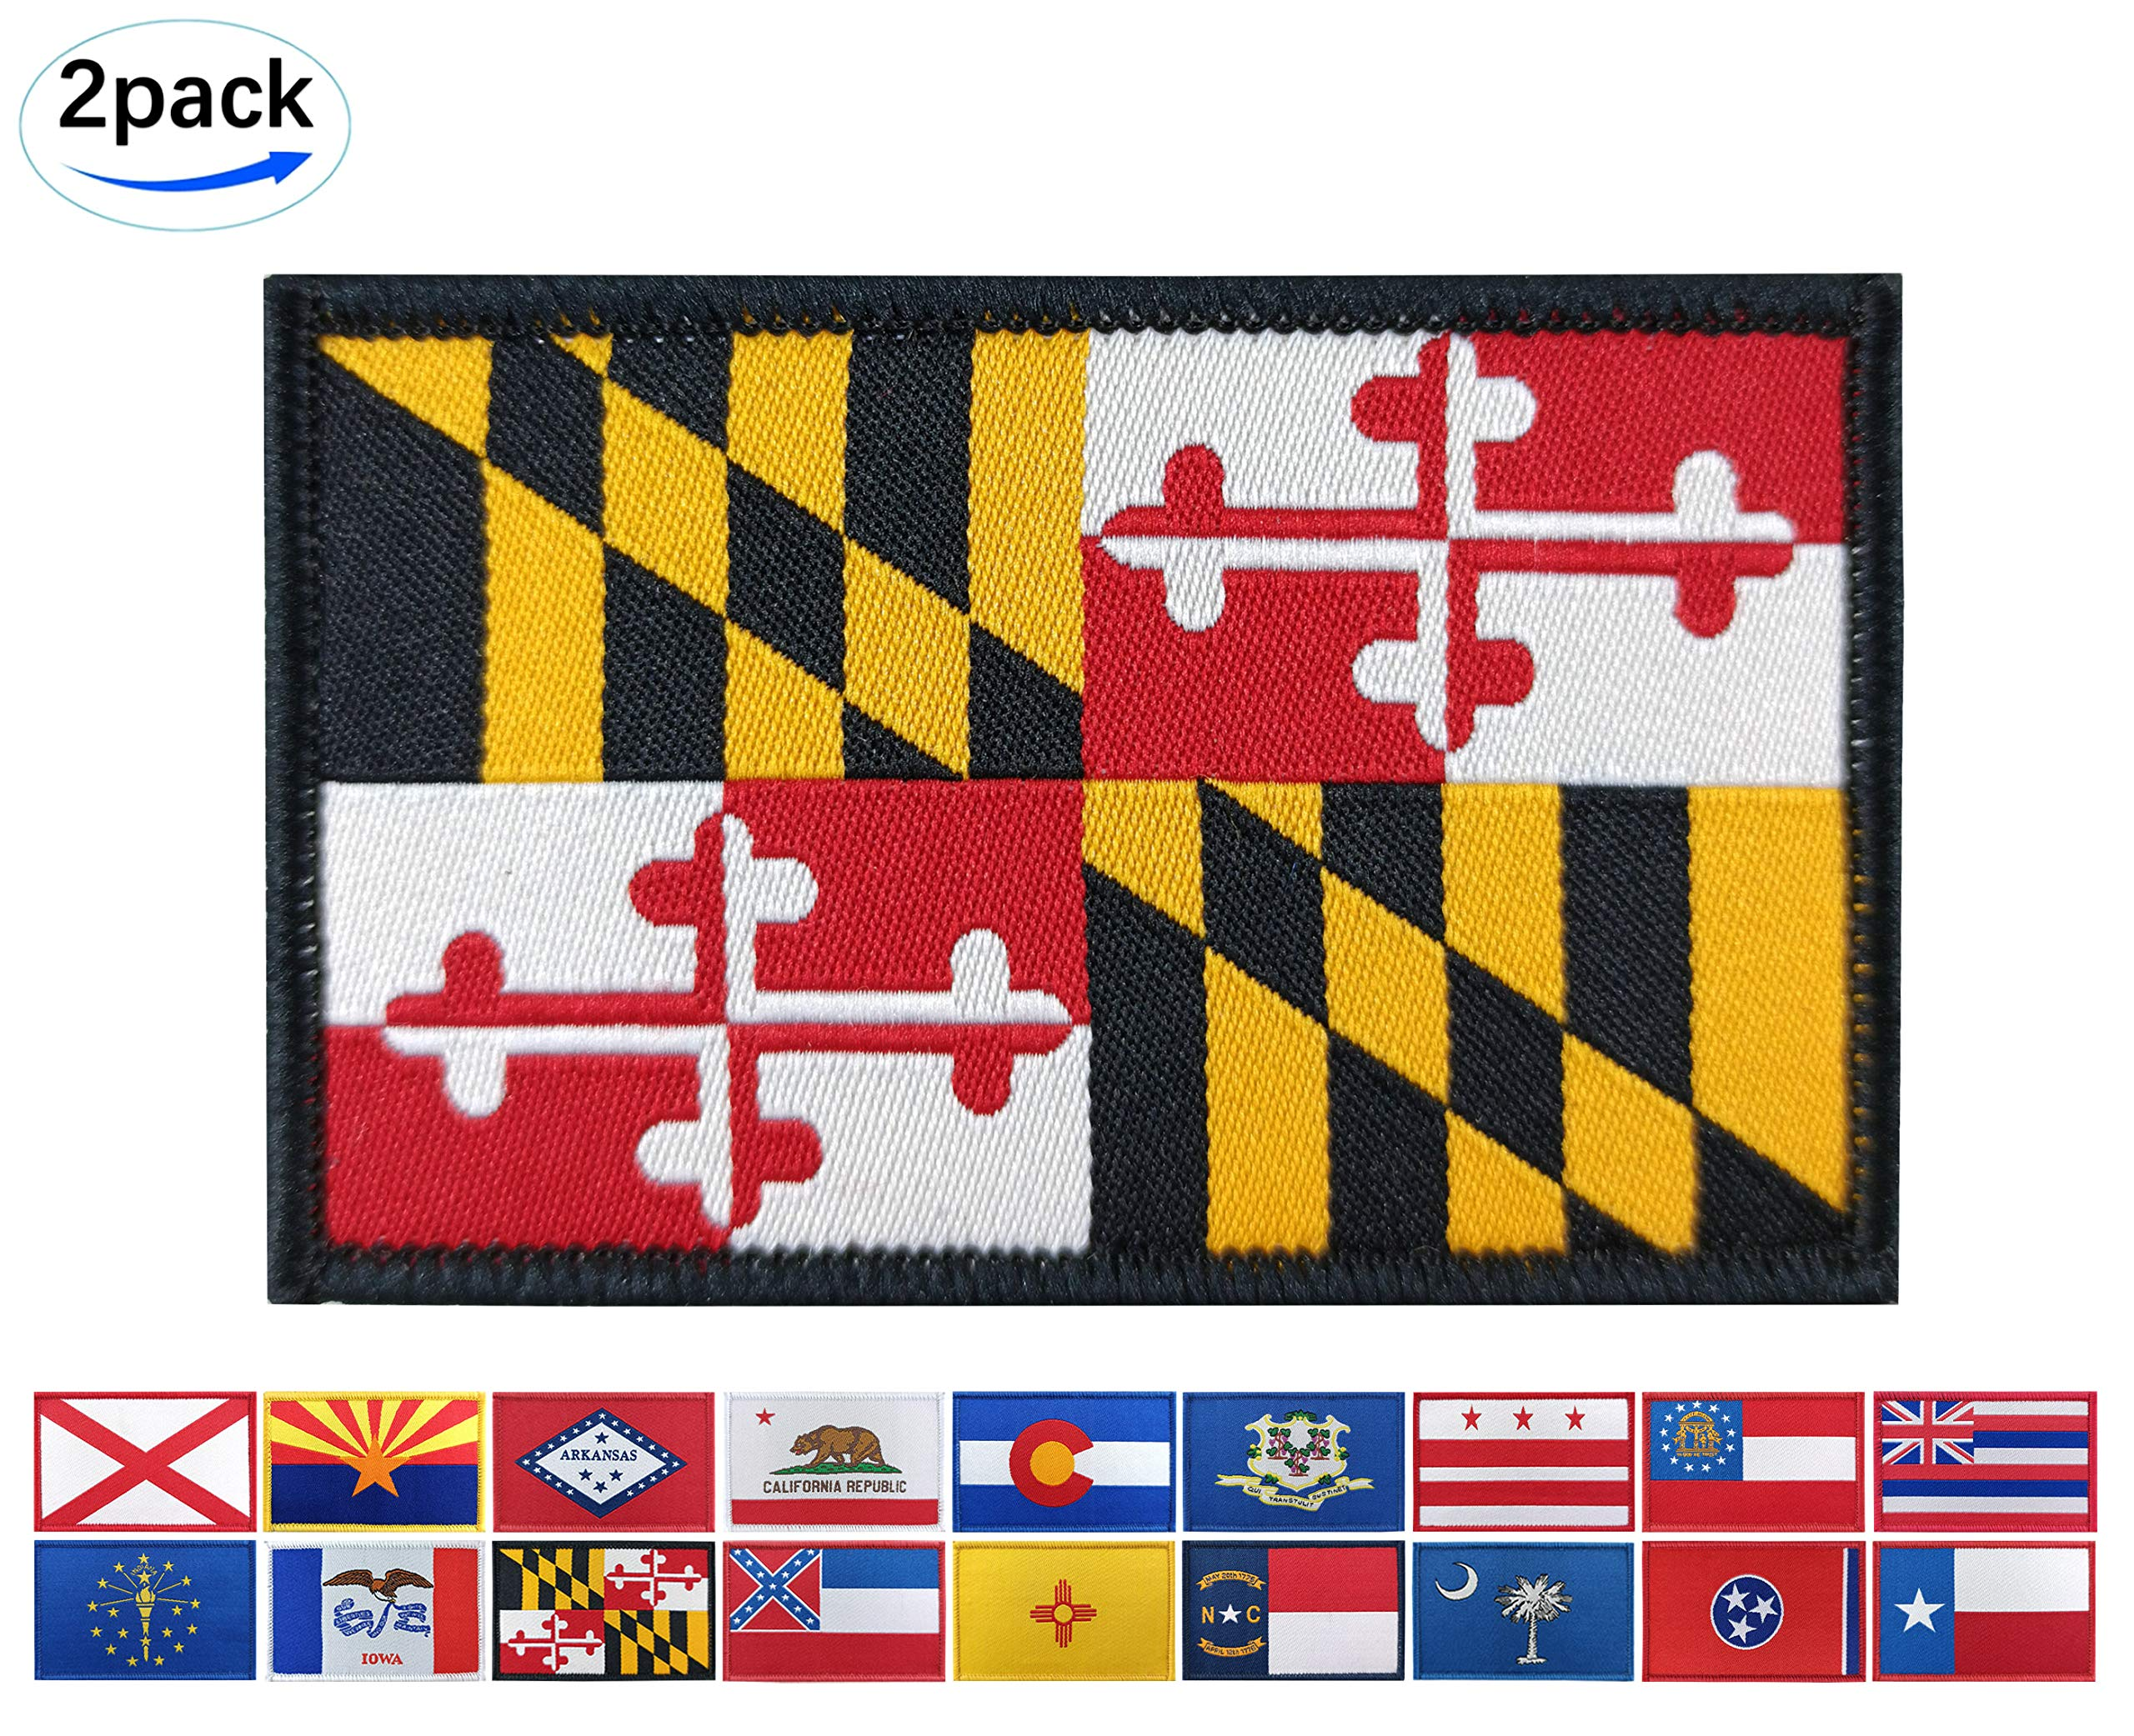 JBCD 2 Pack Maryland Flag Patch States Flags Tactical Patch Pride Flag Patch for Clothes Hat Patch Team Military Patch